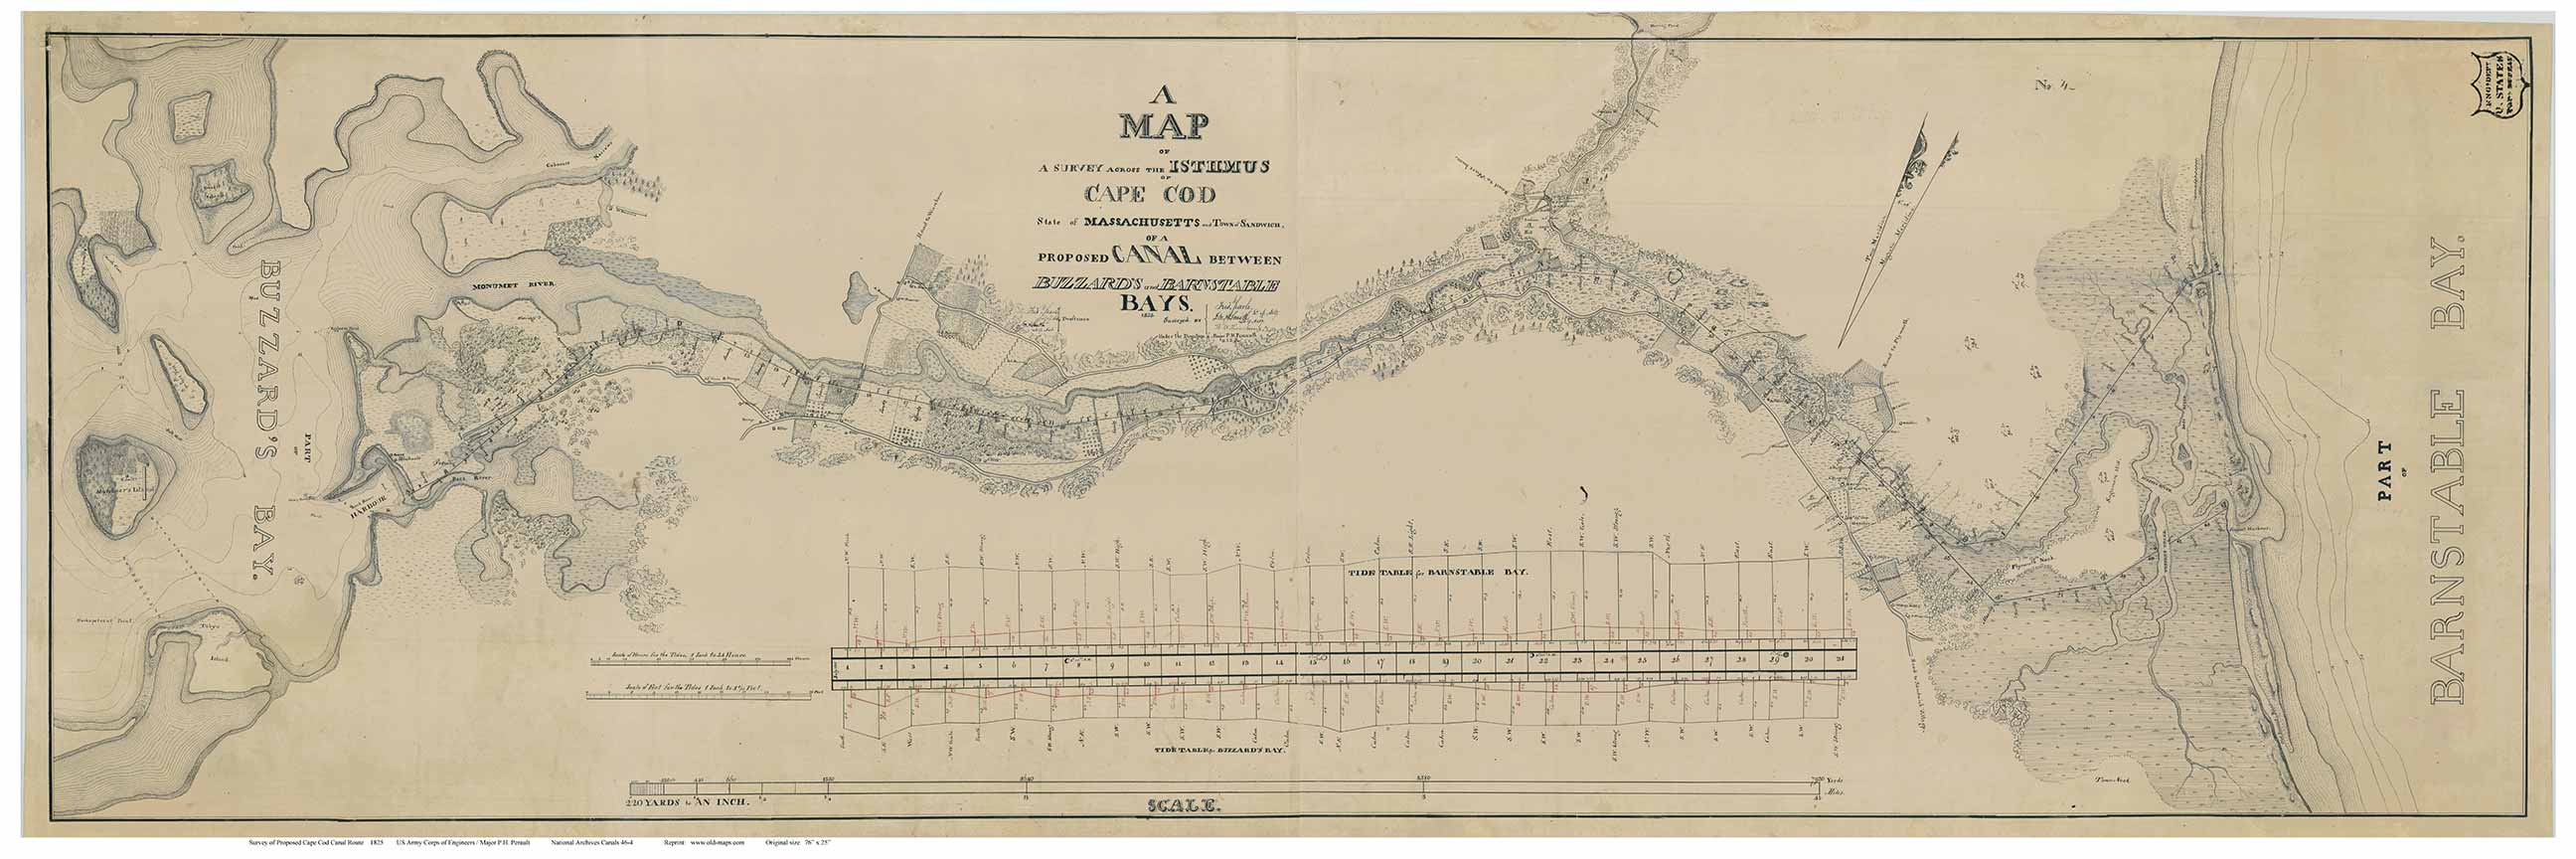 Old Maps of The Cape Cod Canal